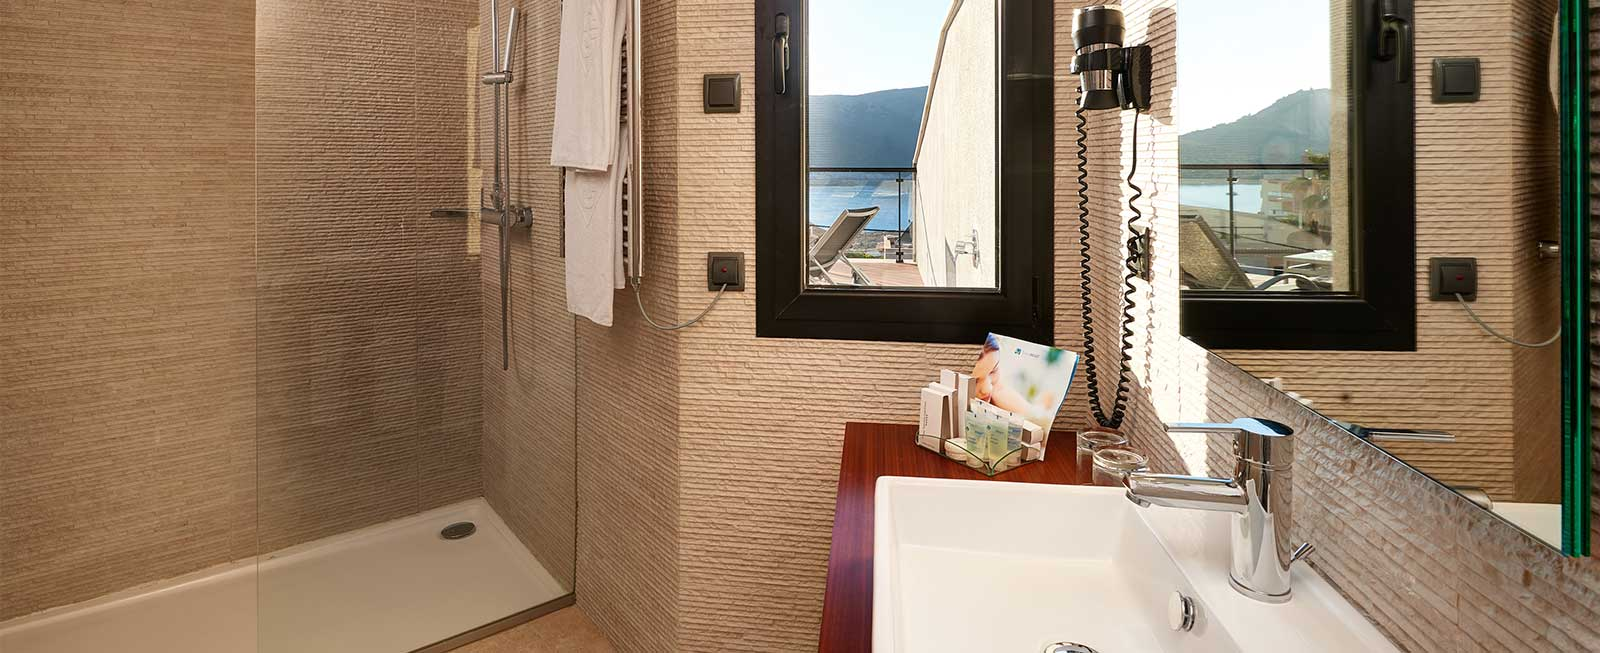 Junior Suite Protur Turo Pins Hotel Spa Cala Rajada